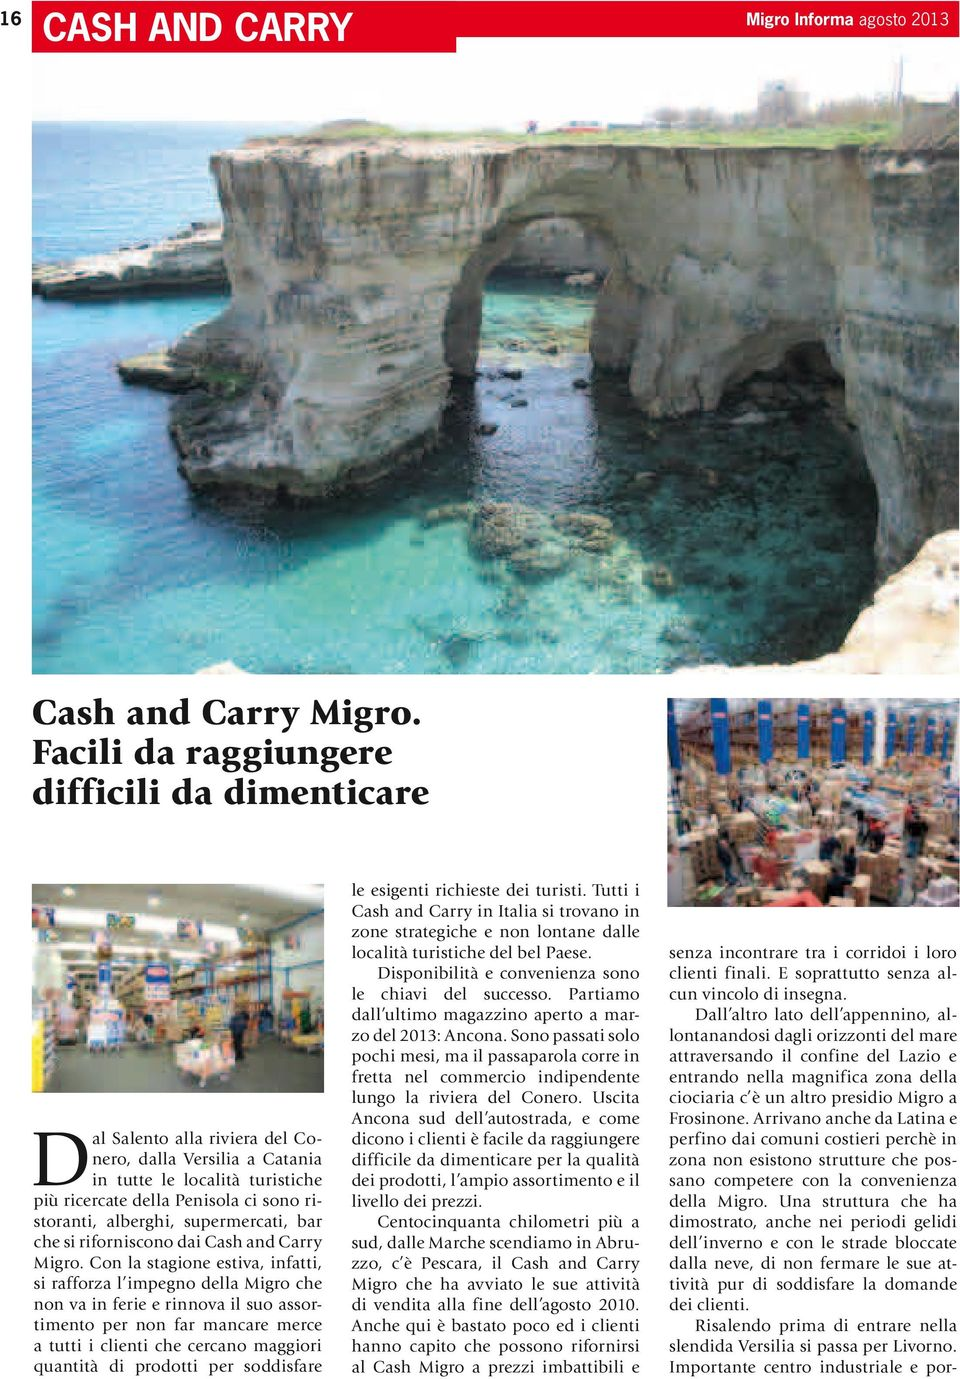 supermercati, bar che si riforniscono dai Cash and Carry Migro.